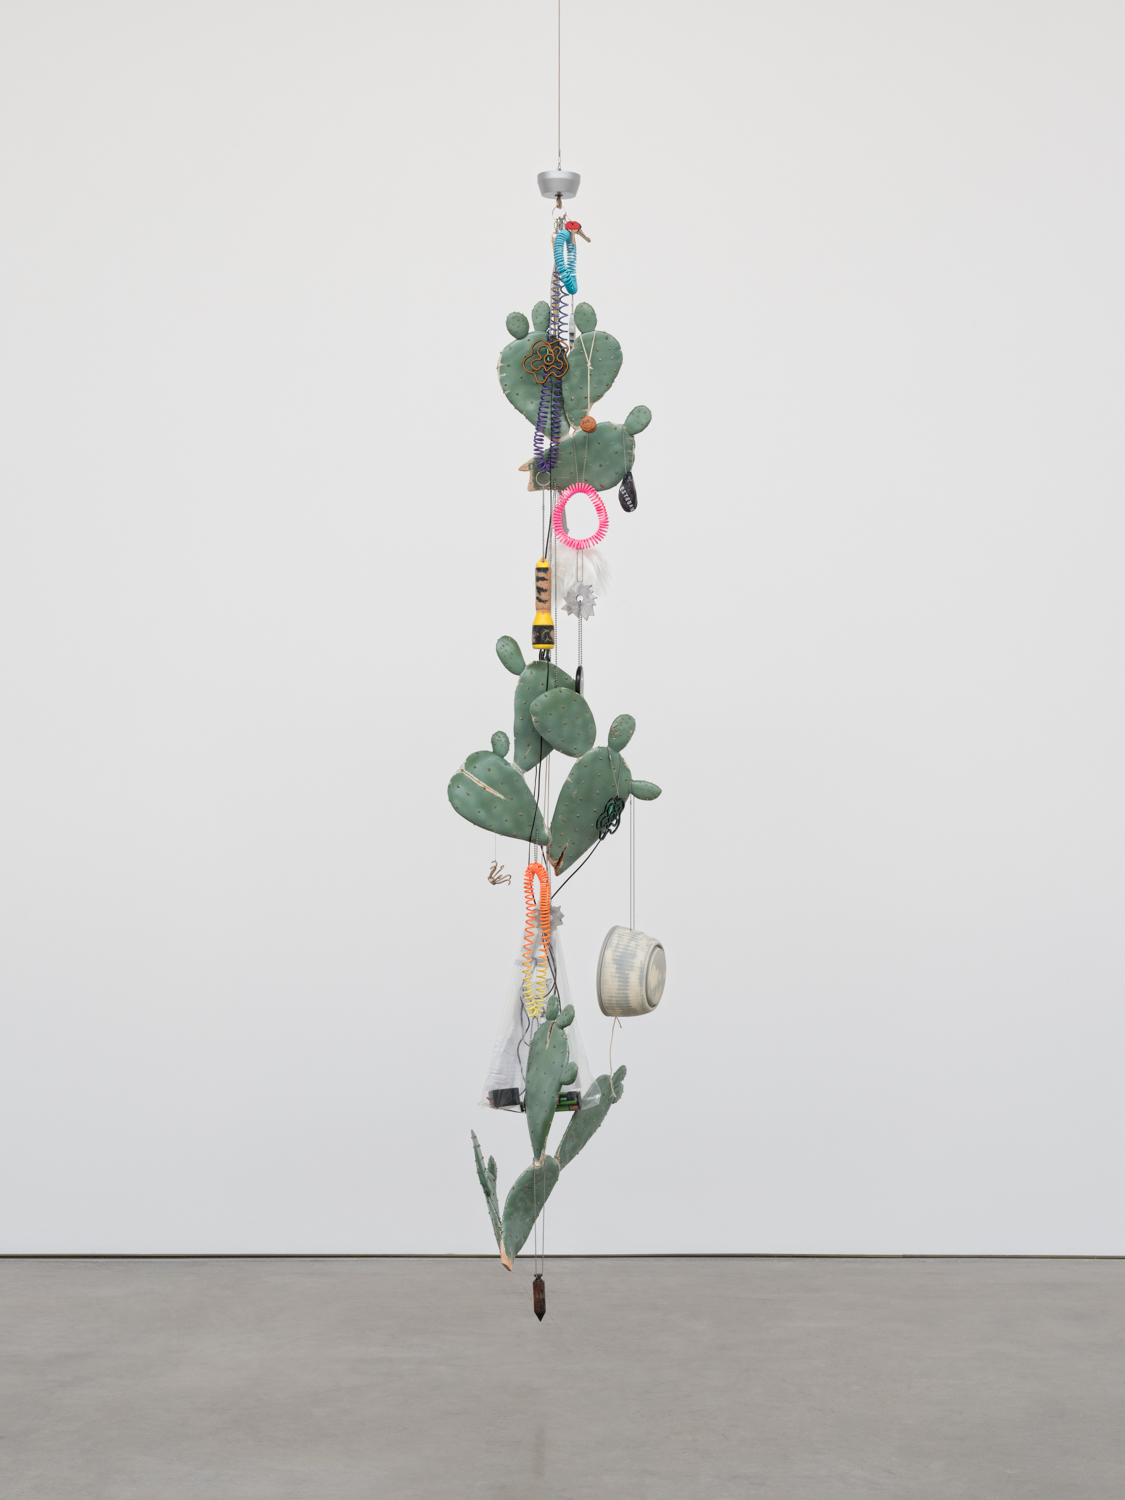 Chris Bradley  Token (Life Raft)  2018 Cast bronze, cast aluminum, steel, wool, PLA, foam, paint, neon, AA batteries, wire, ball chain, key rings, hardware 86h x 16w x 14d in CB263